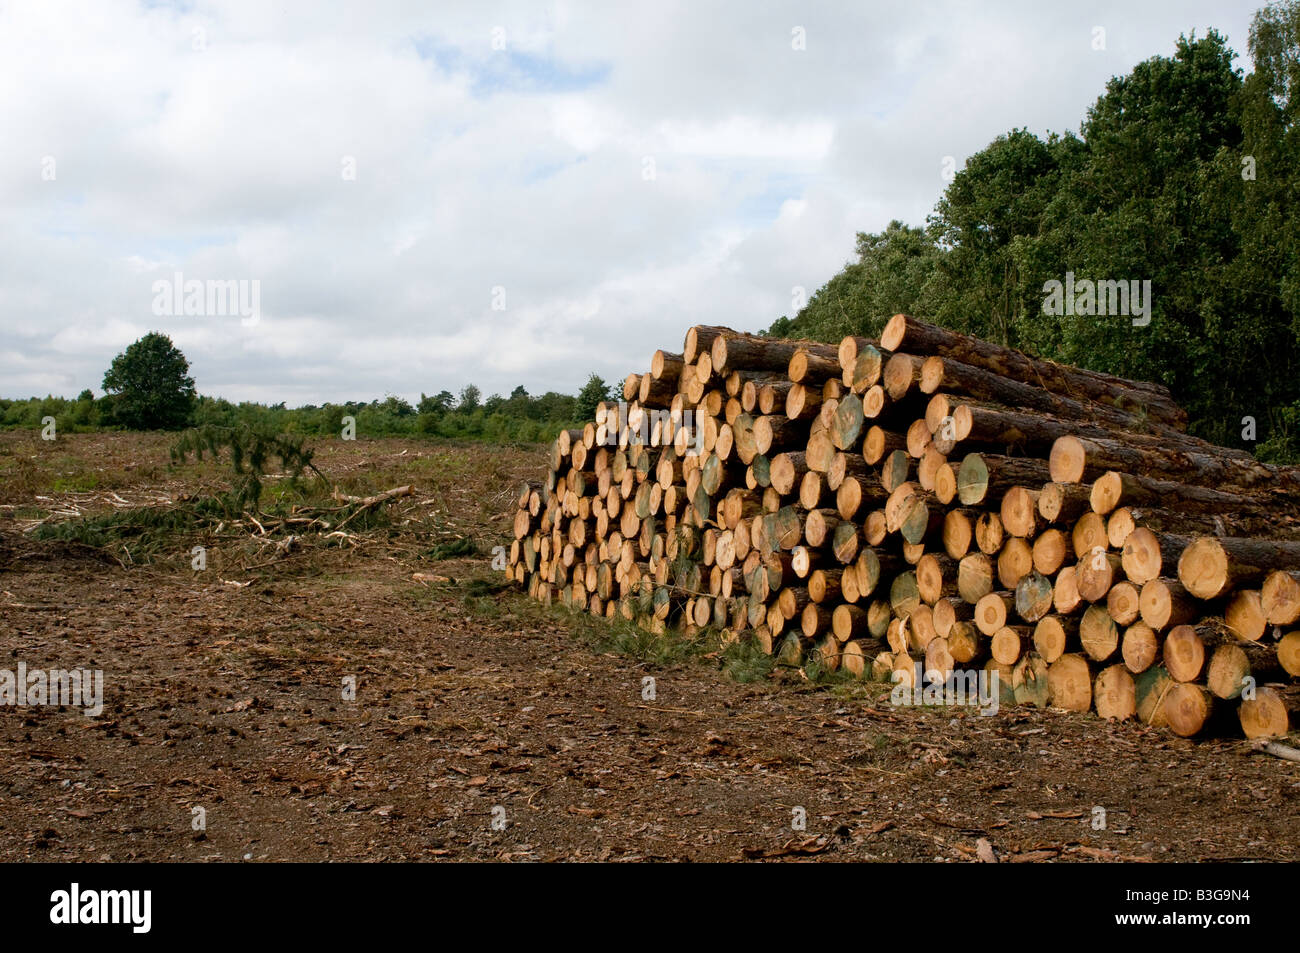 Softwood timber stacked for transport in Tunstall Forest, Suffolk - Stock Image